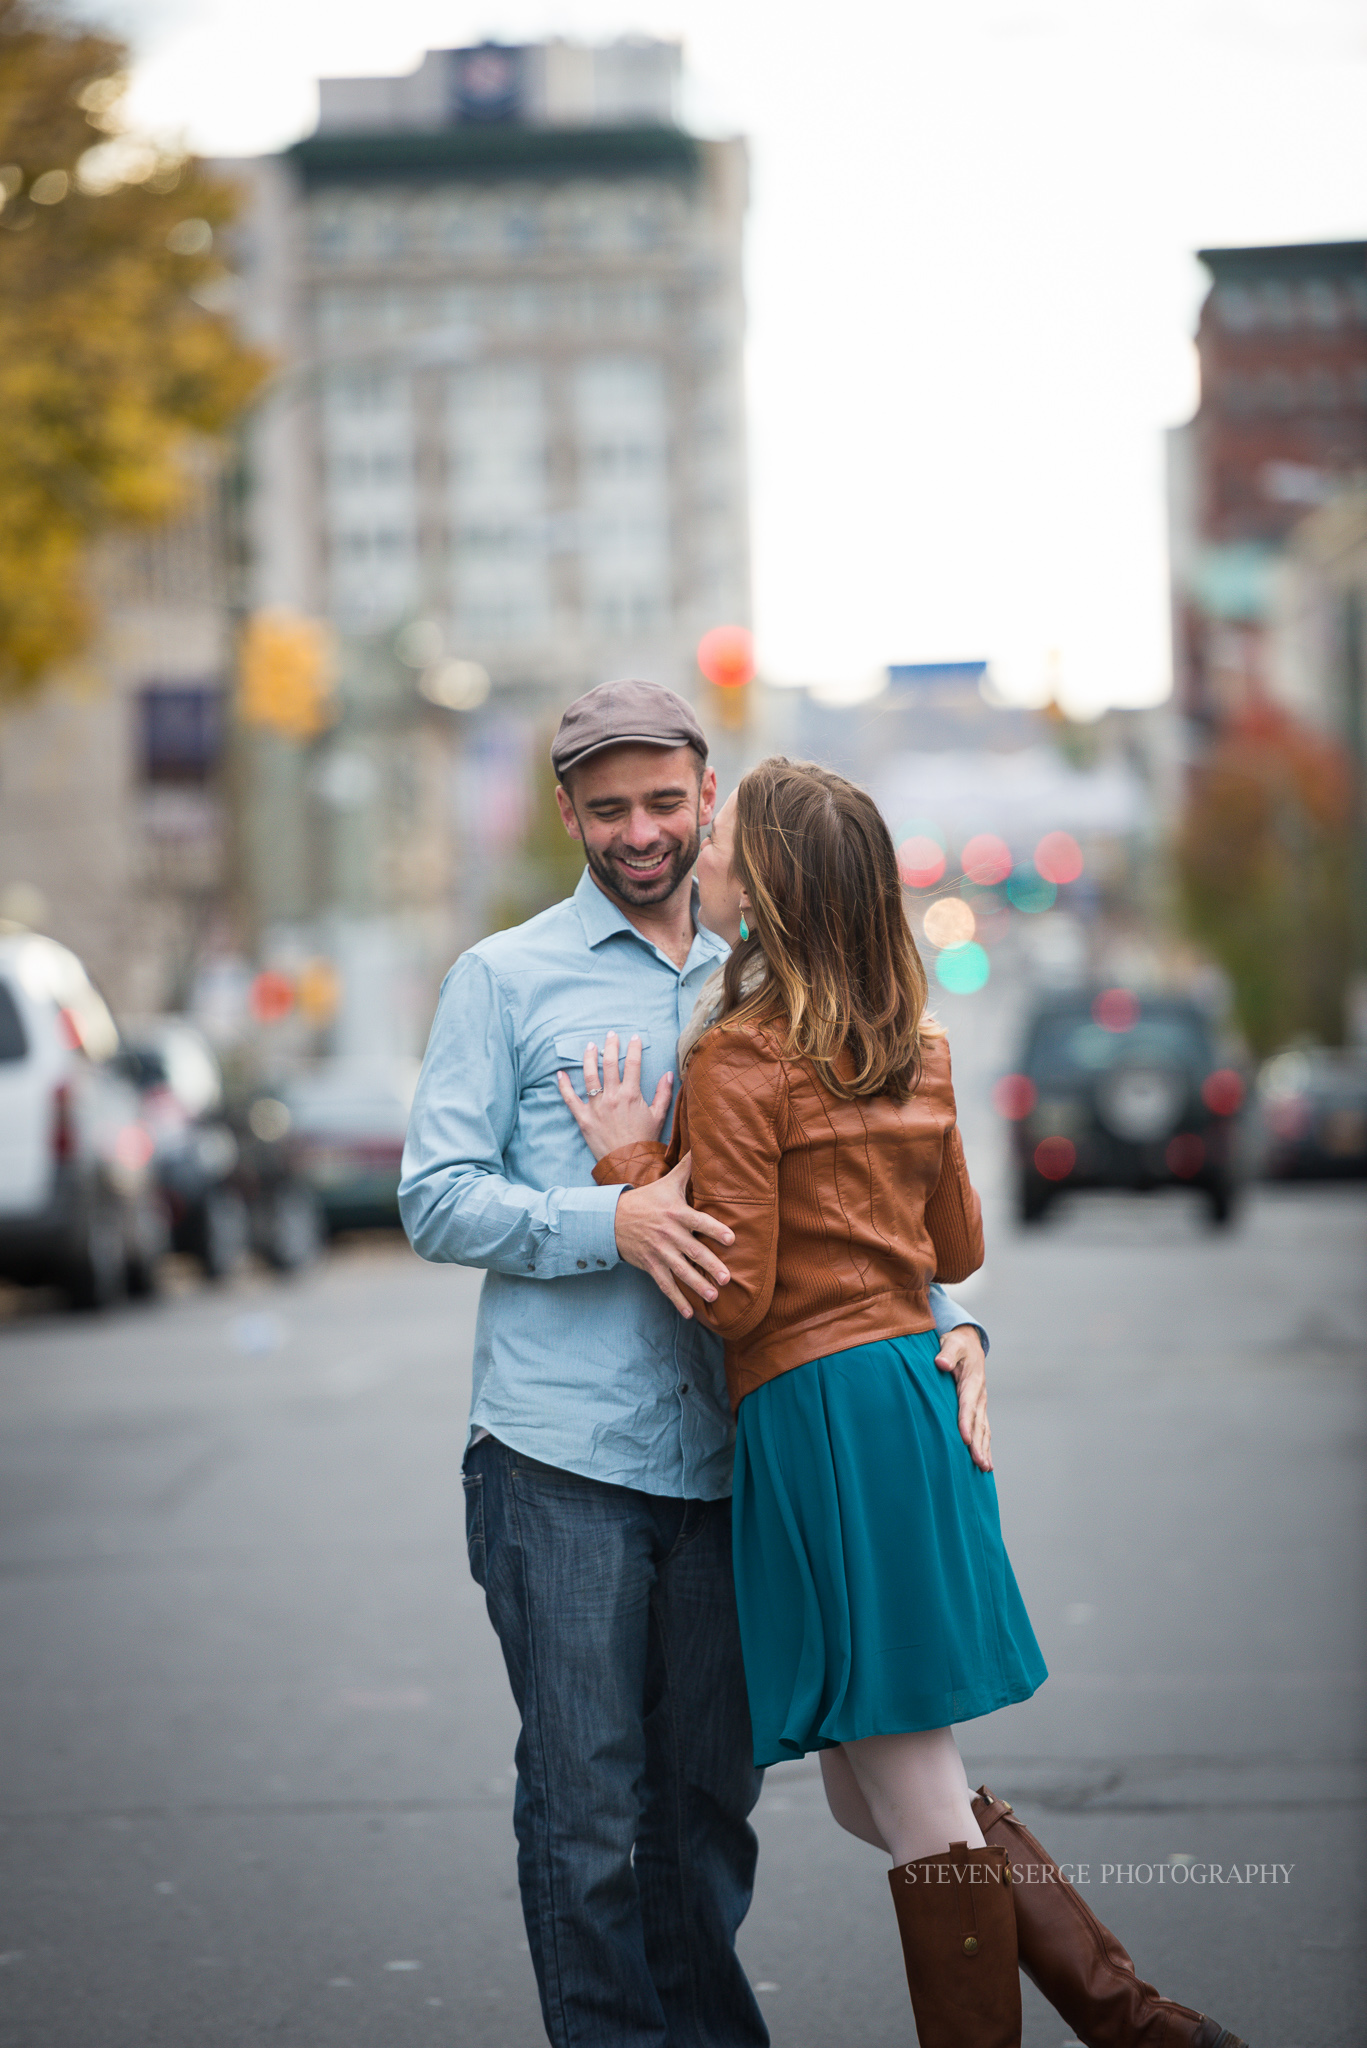 Aleine-Scranton-Engagement-Wedding-Nepa-Photographer-Steamtown-Photography-15.jpg